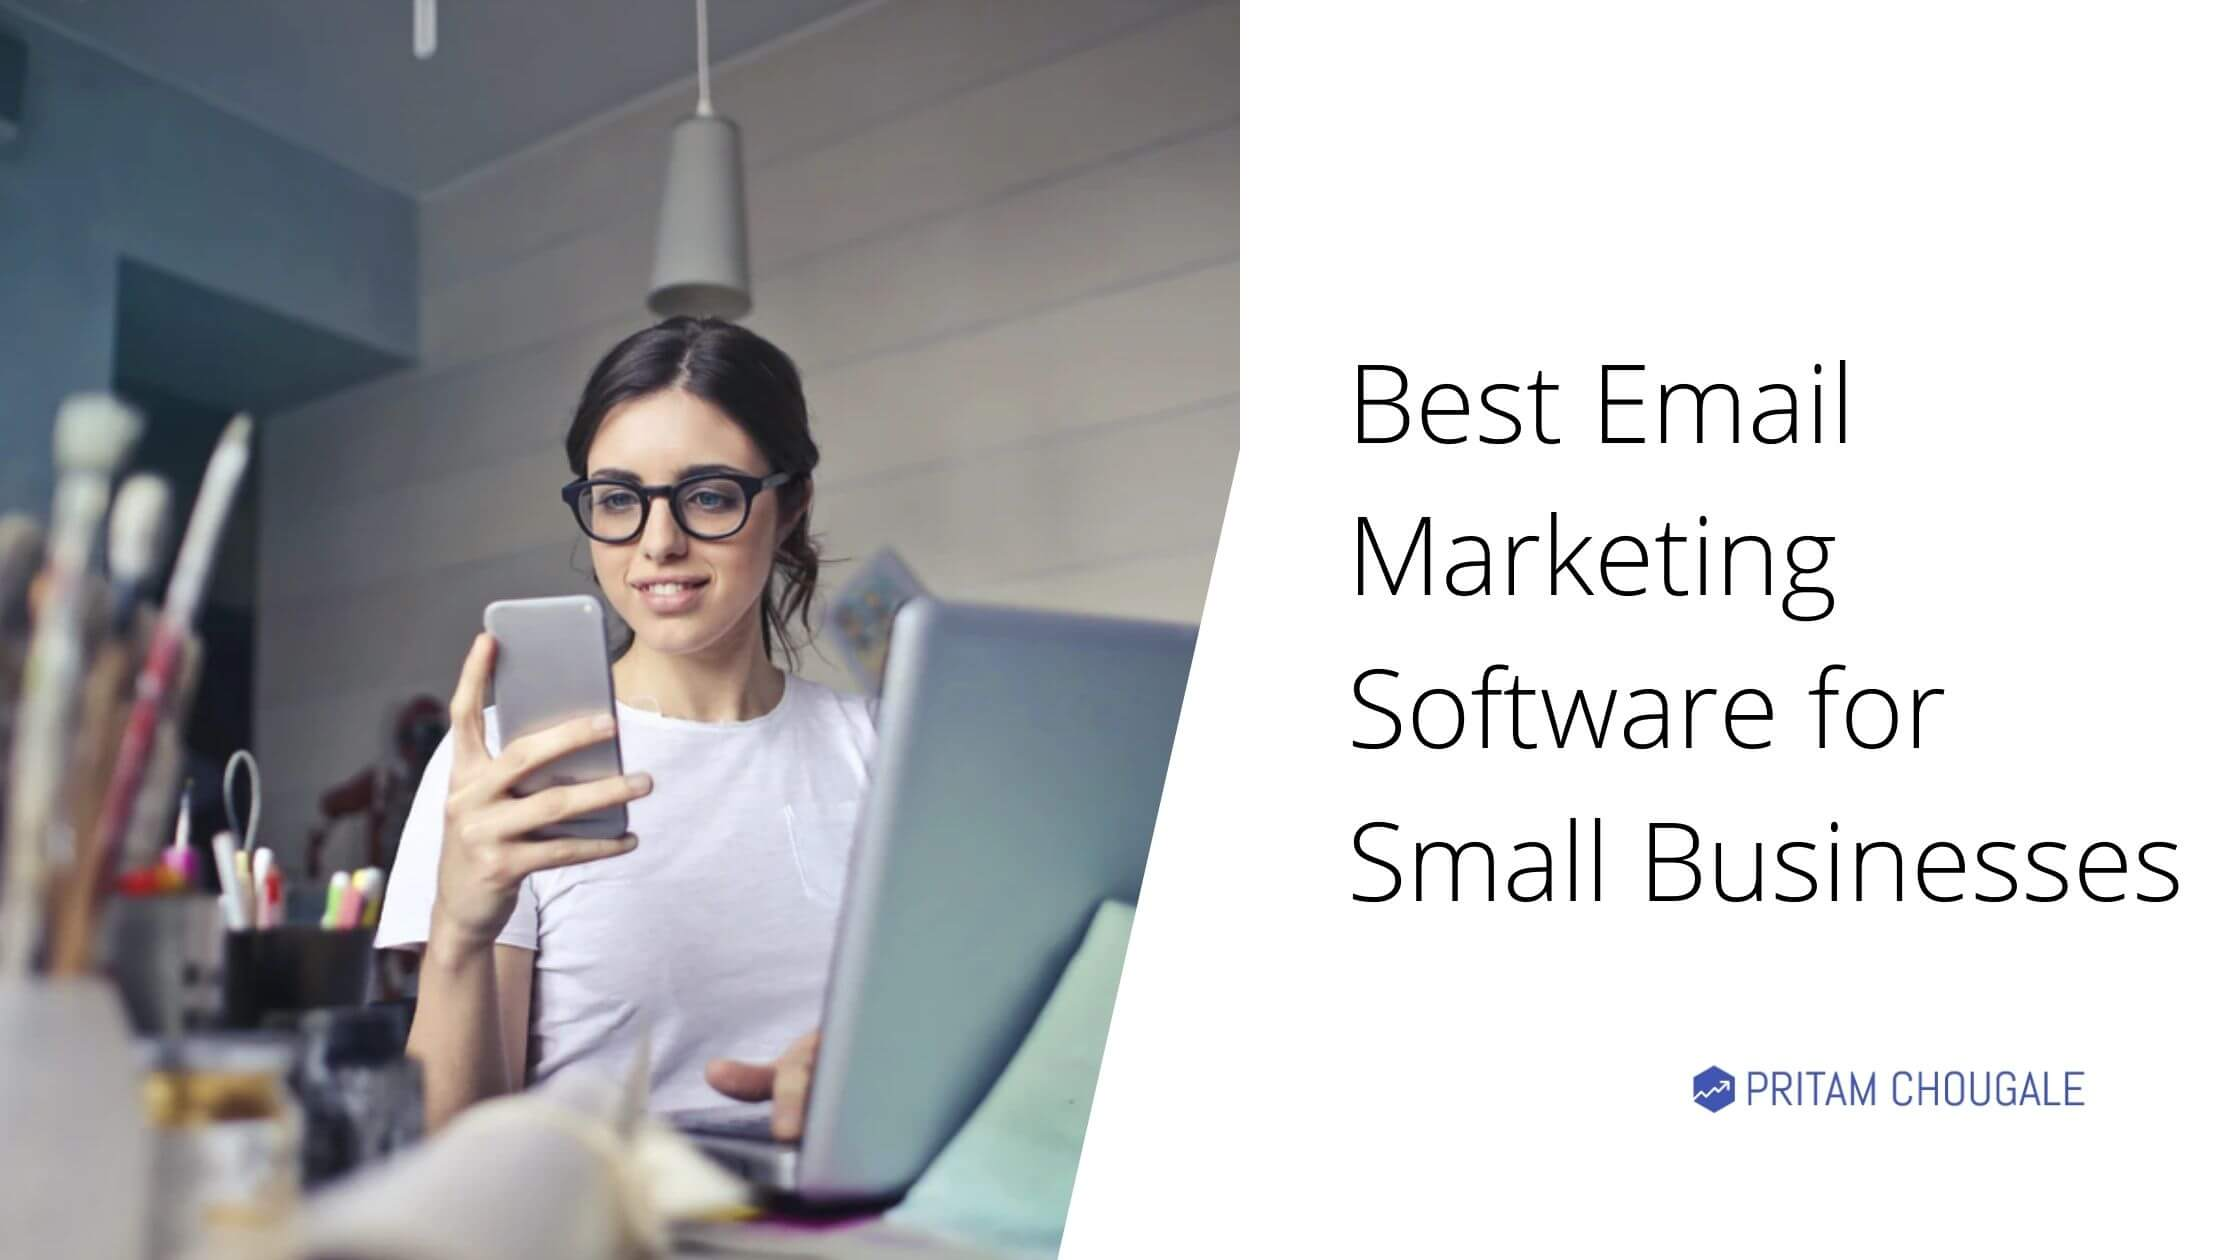 You are currently viewing 5 Free Email Marketing Software for Small Businesses